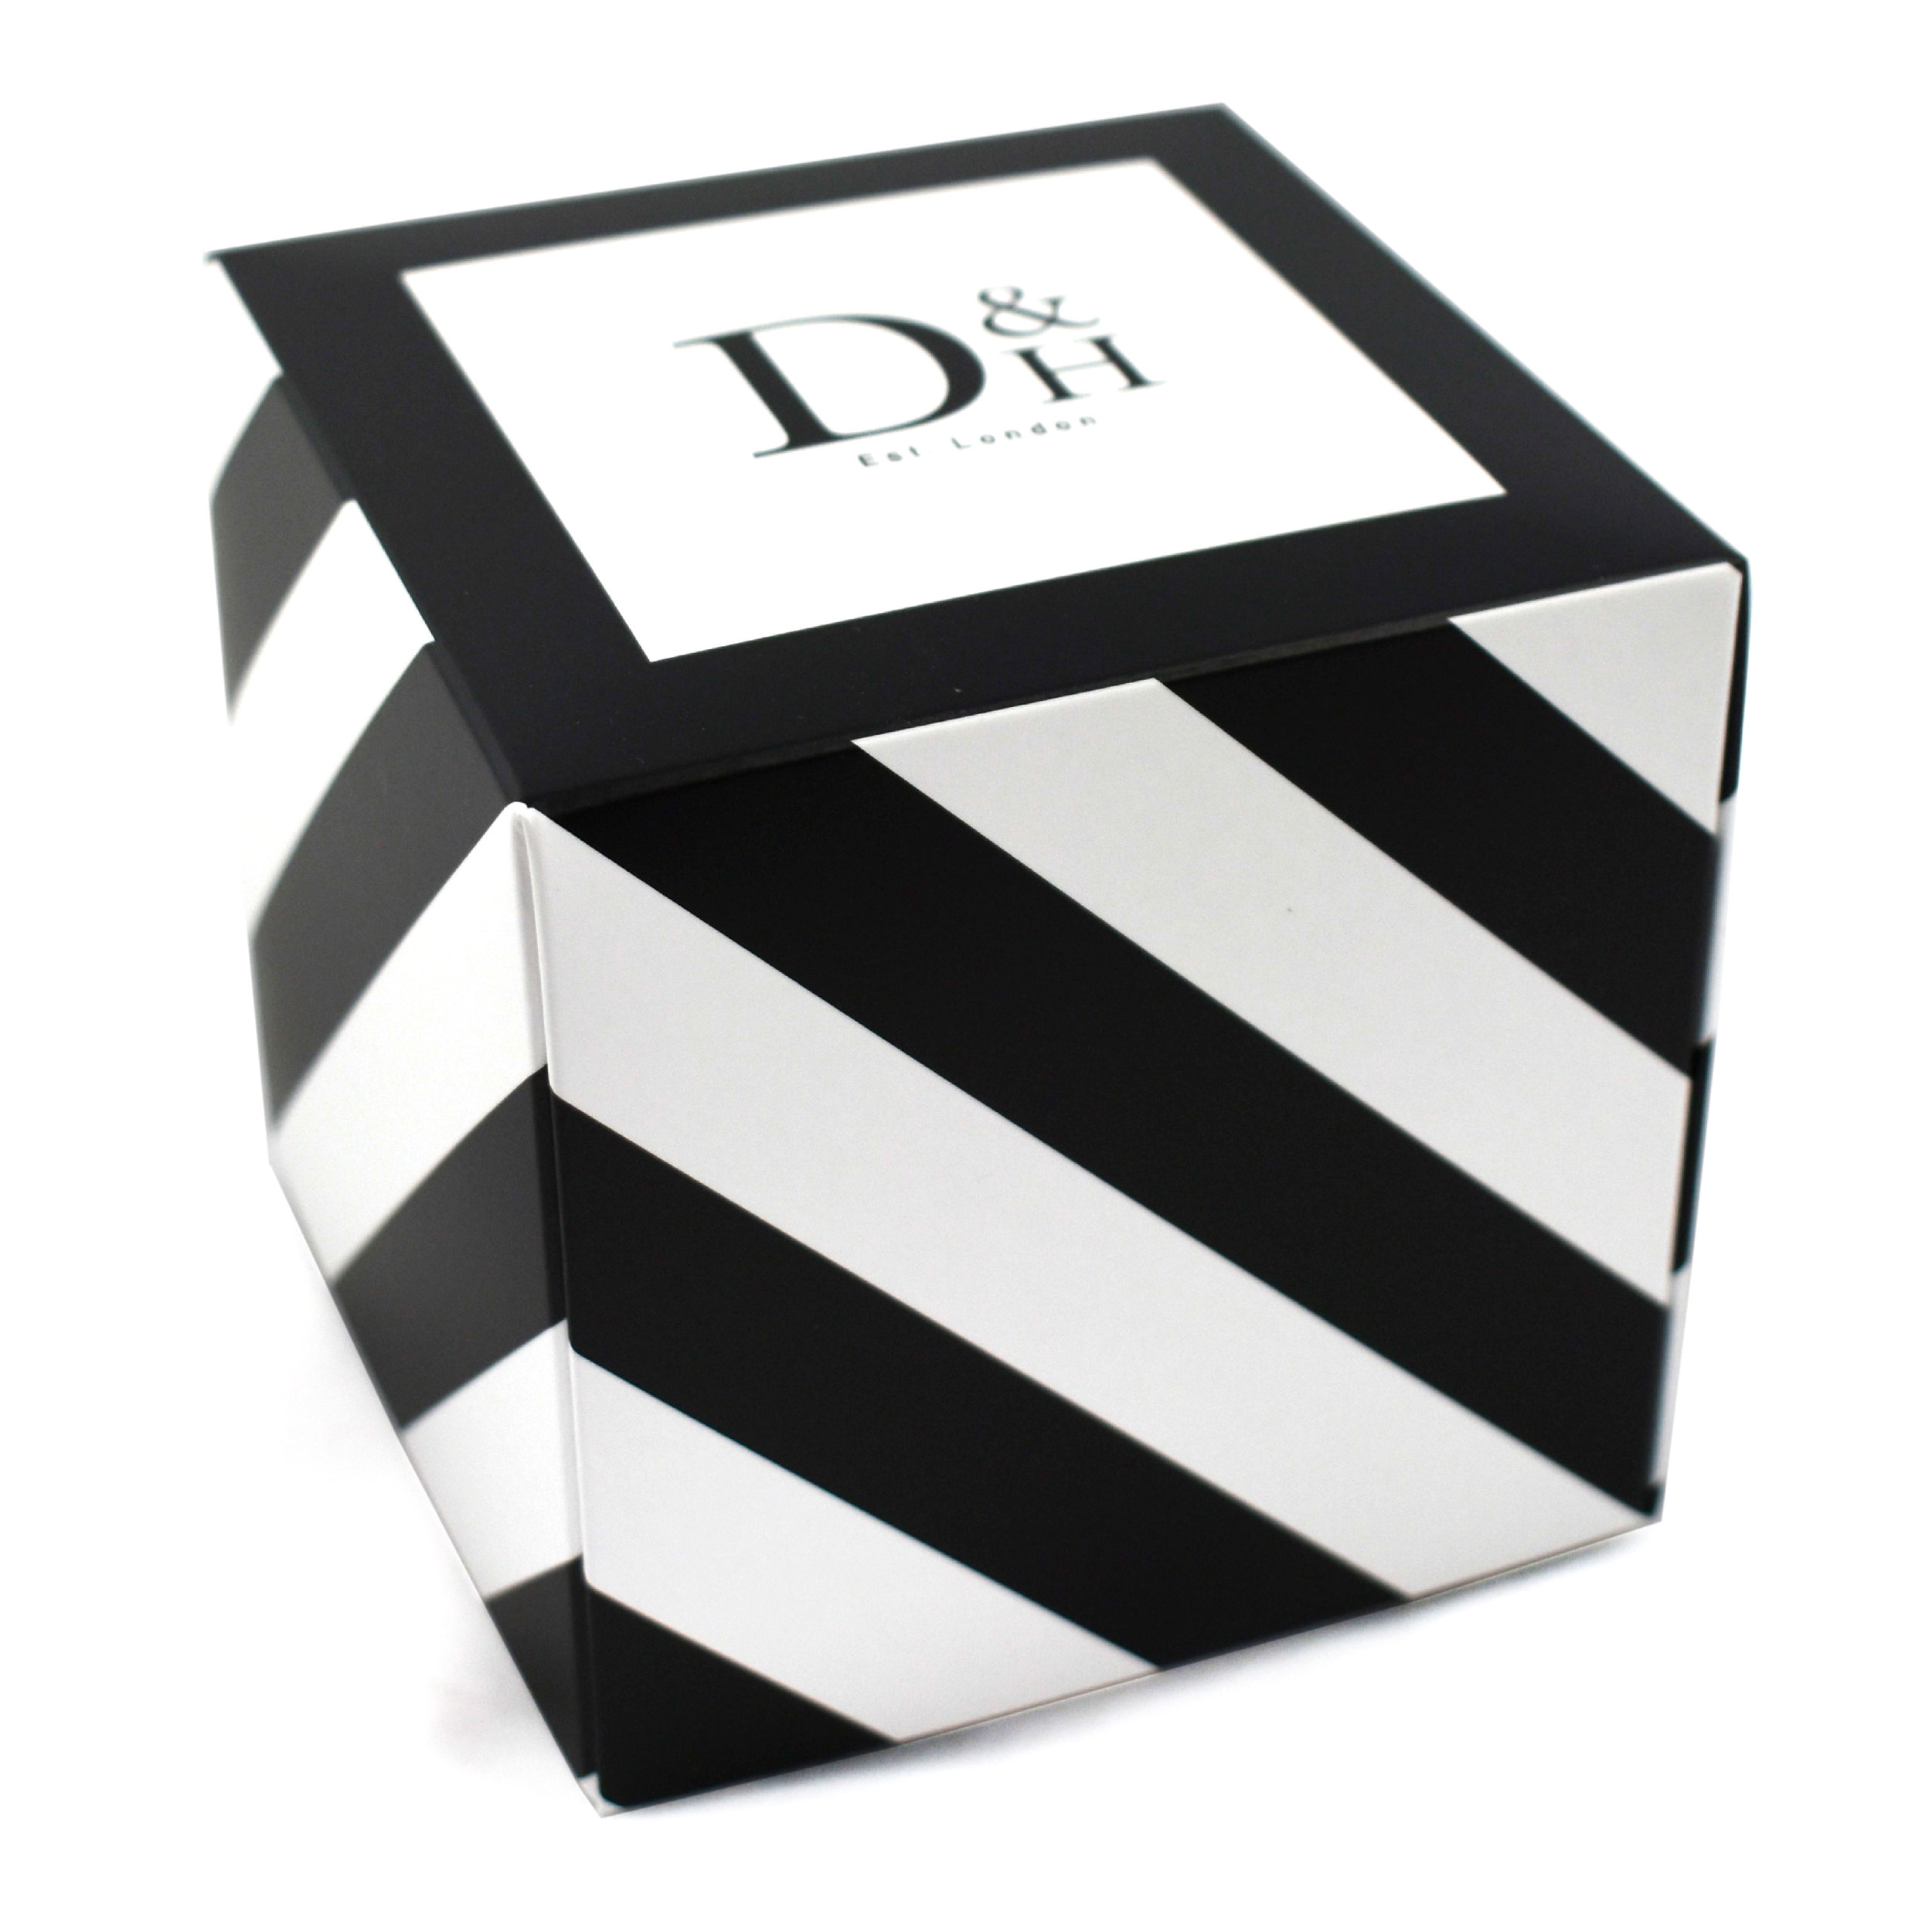 Ideal for gifts and great for instore displays. They can be delivered ready made or flat packed for easy storage.